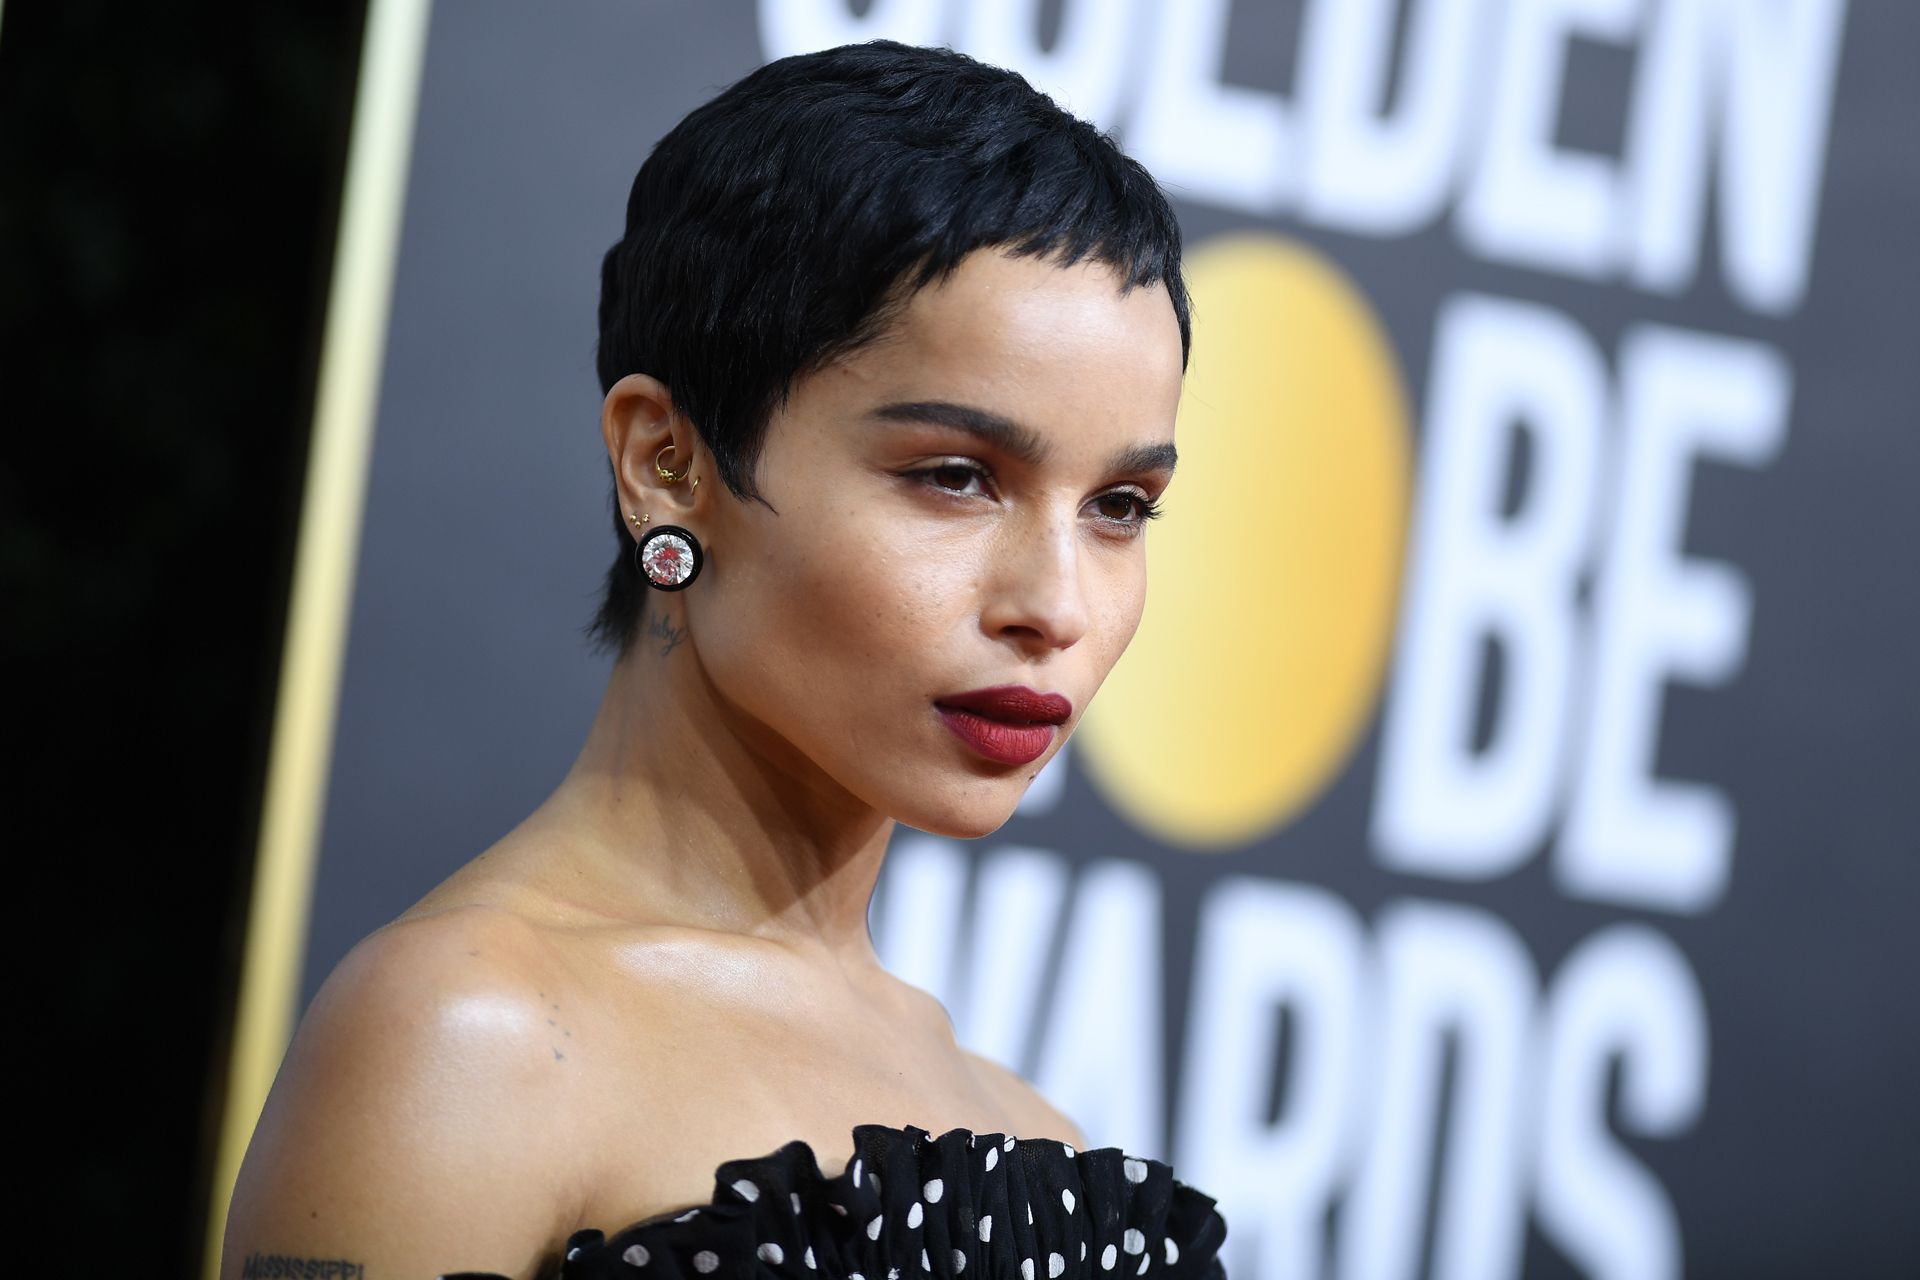 US actress Zoe Kravitz arrives for the 77th annual Golden Globe Awards on January 5, 2020, at The Beverly Hilton hotel in Beverly Hills, California. (Photo by VALERIE MACON / AFP)